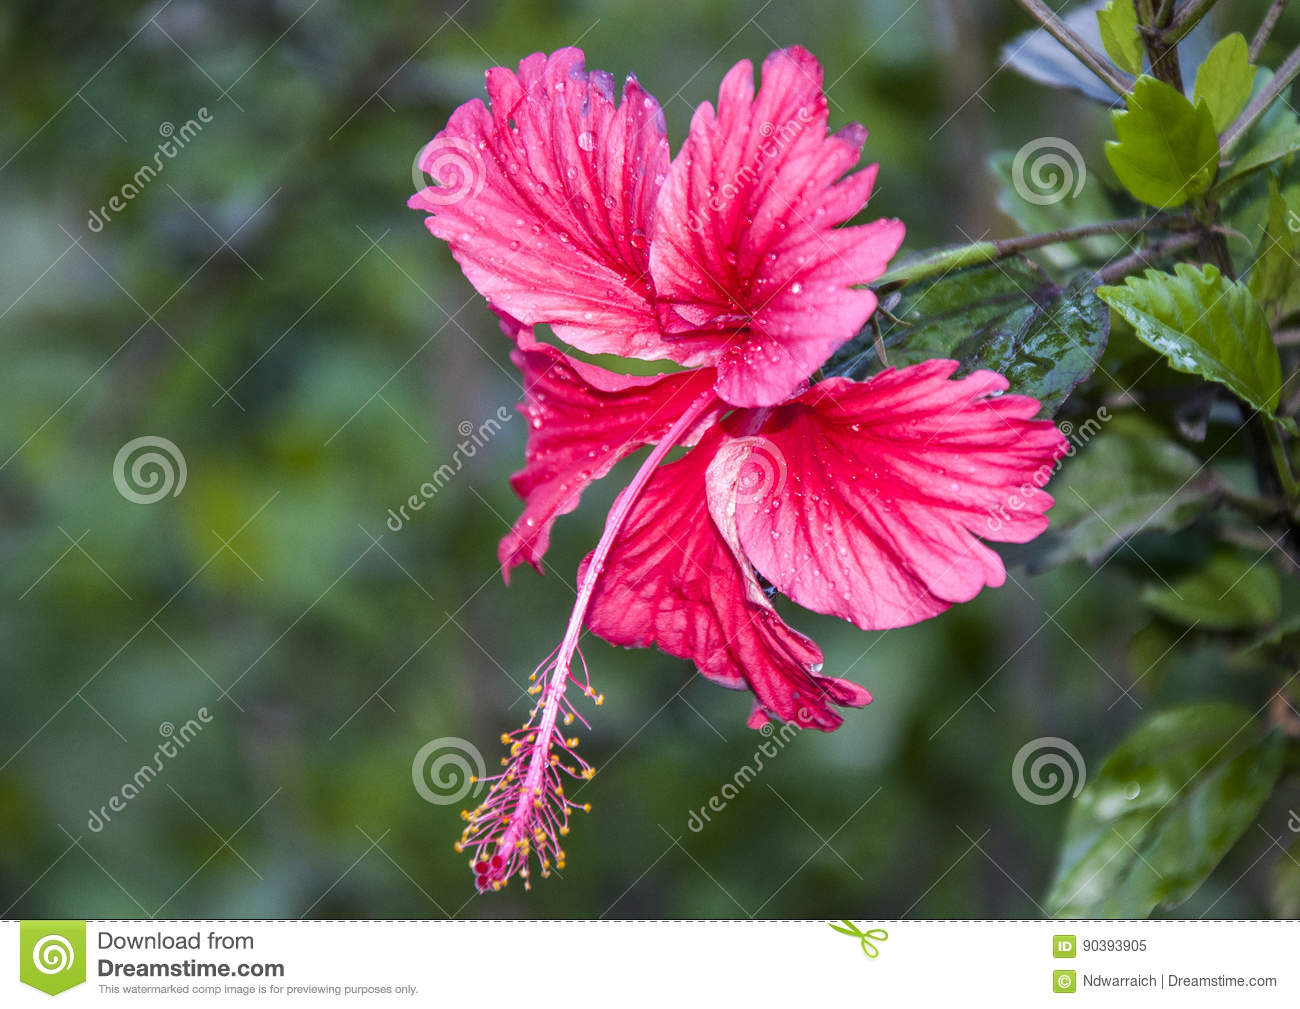 Red Hibiscus Flower Stock Image Image Of Leaf Colorful 90393905